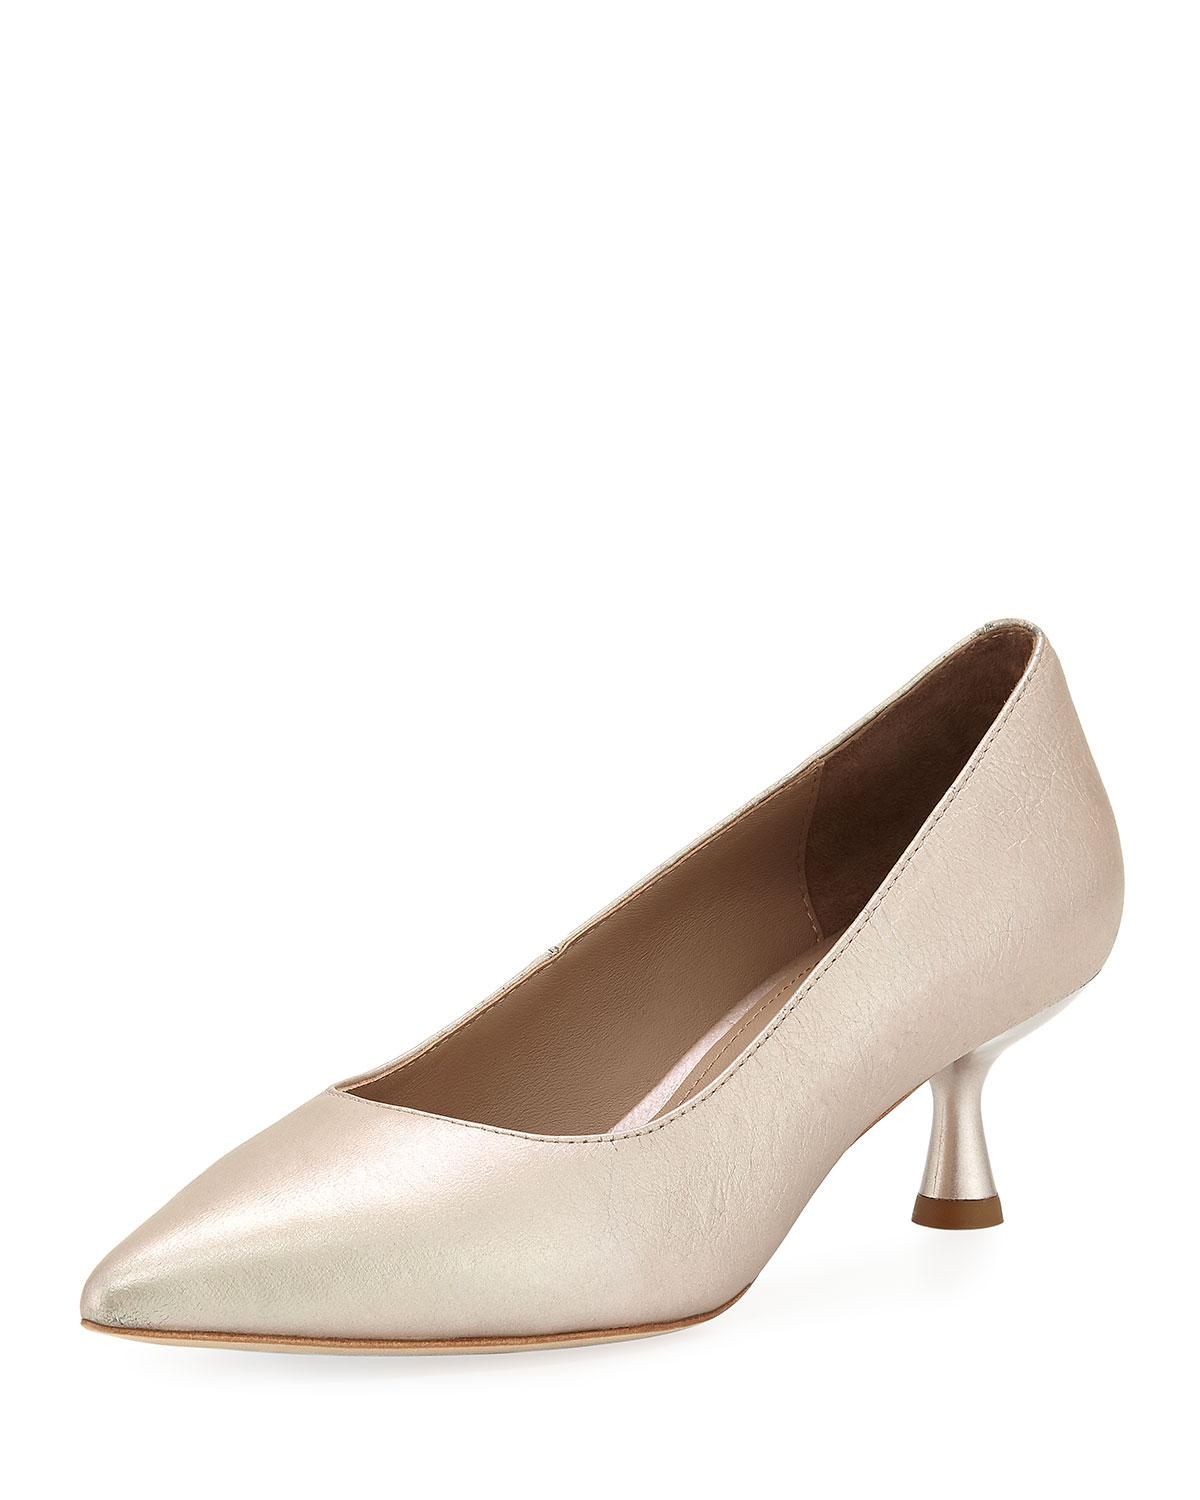 9acf0ab4b65 Lyst - Donald J Pliner Bon Pointed-toe Low Metallic Leather Pumps in ...